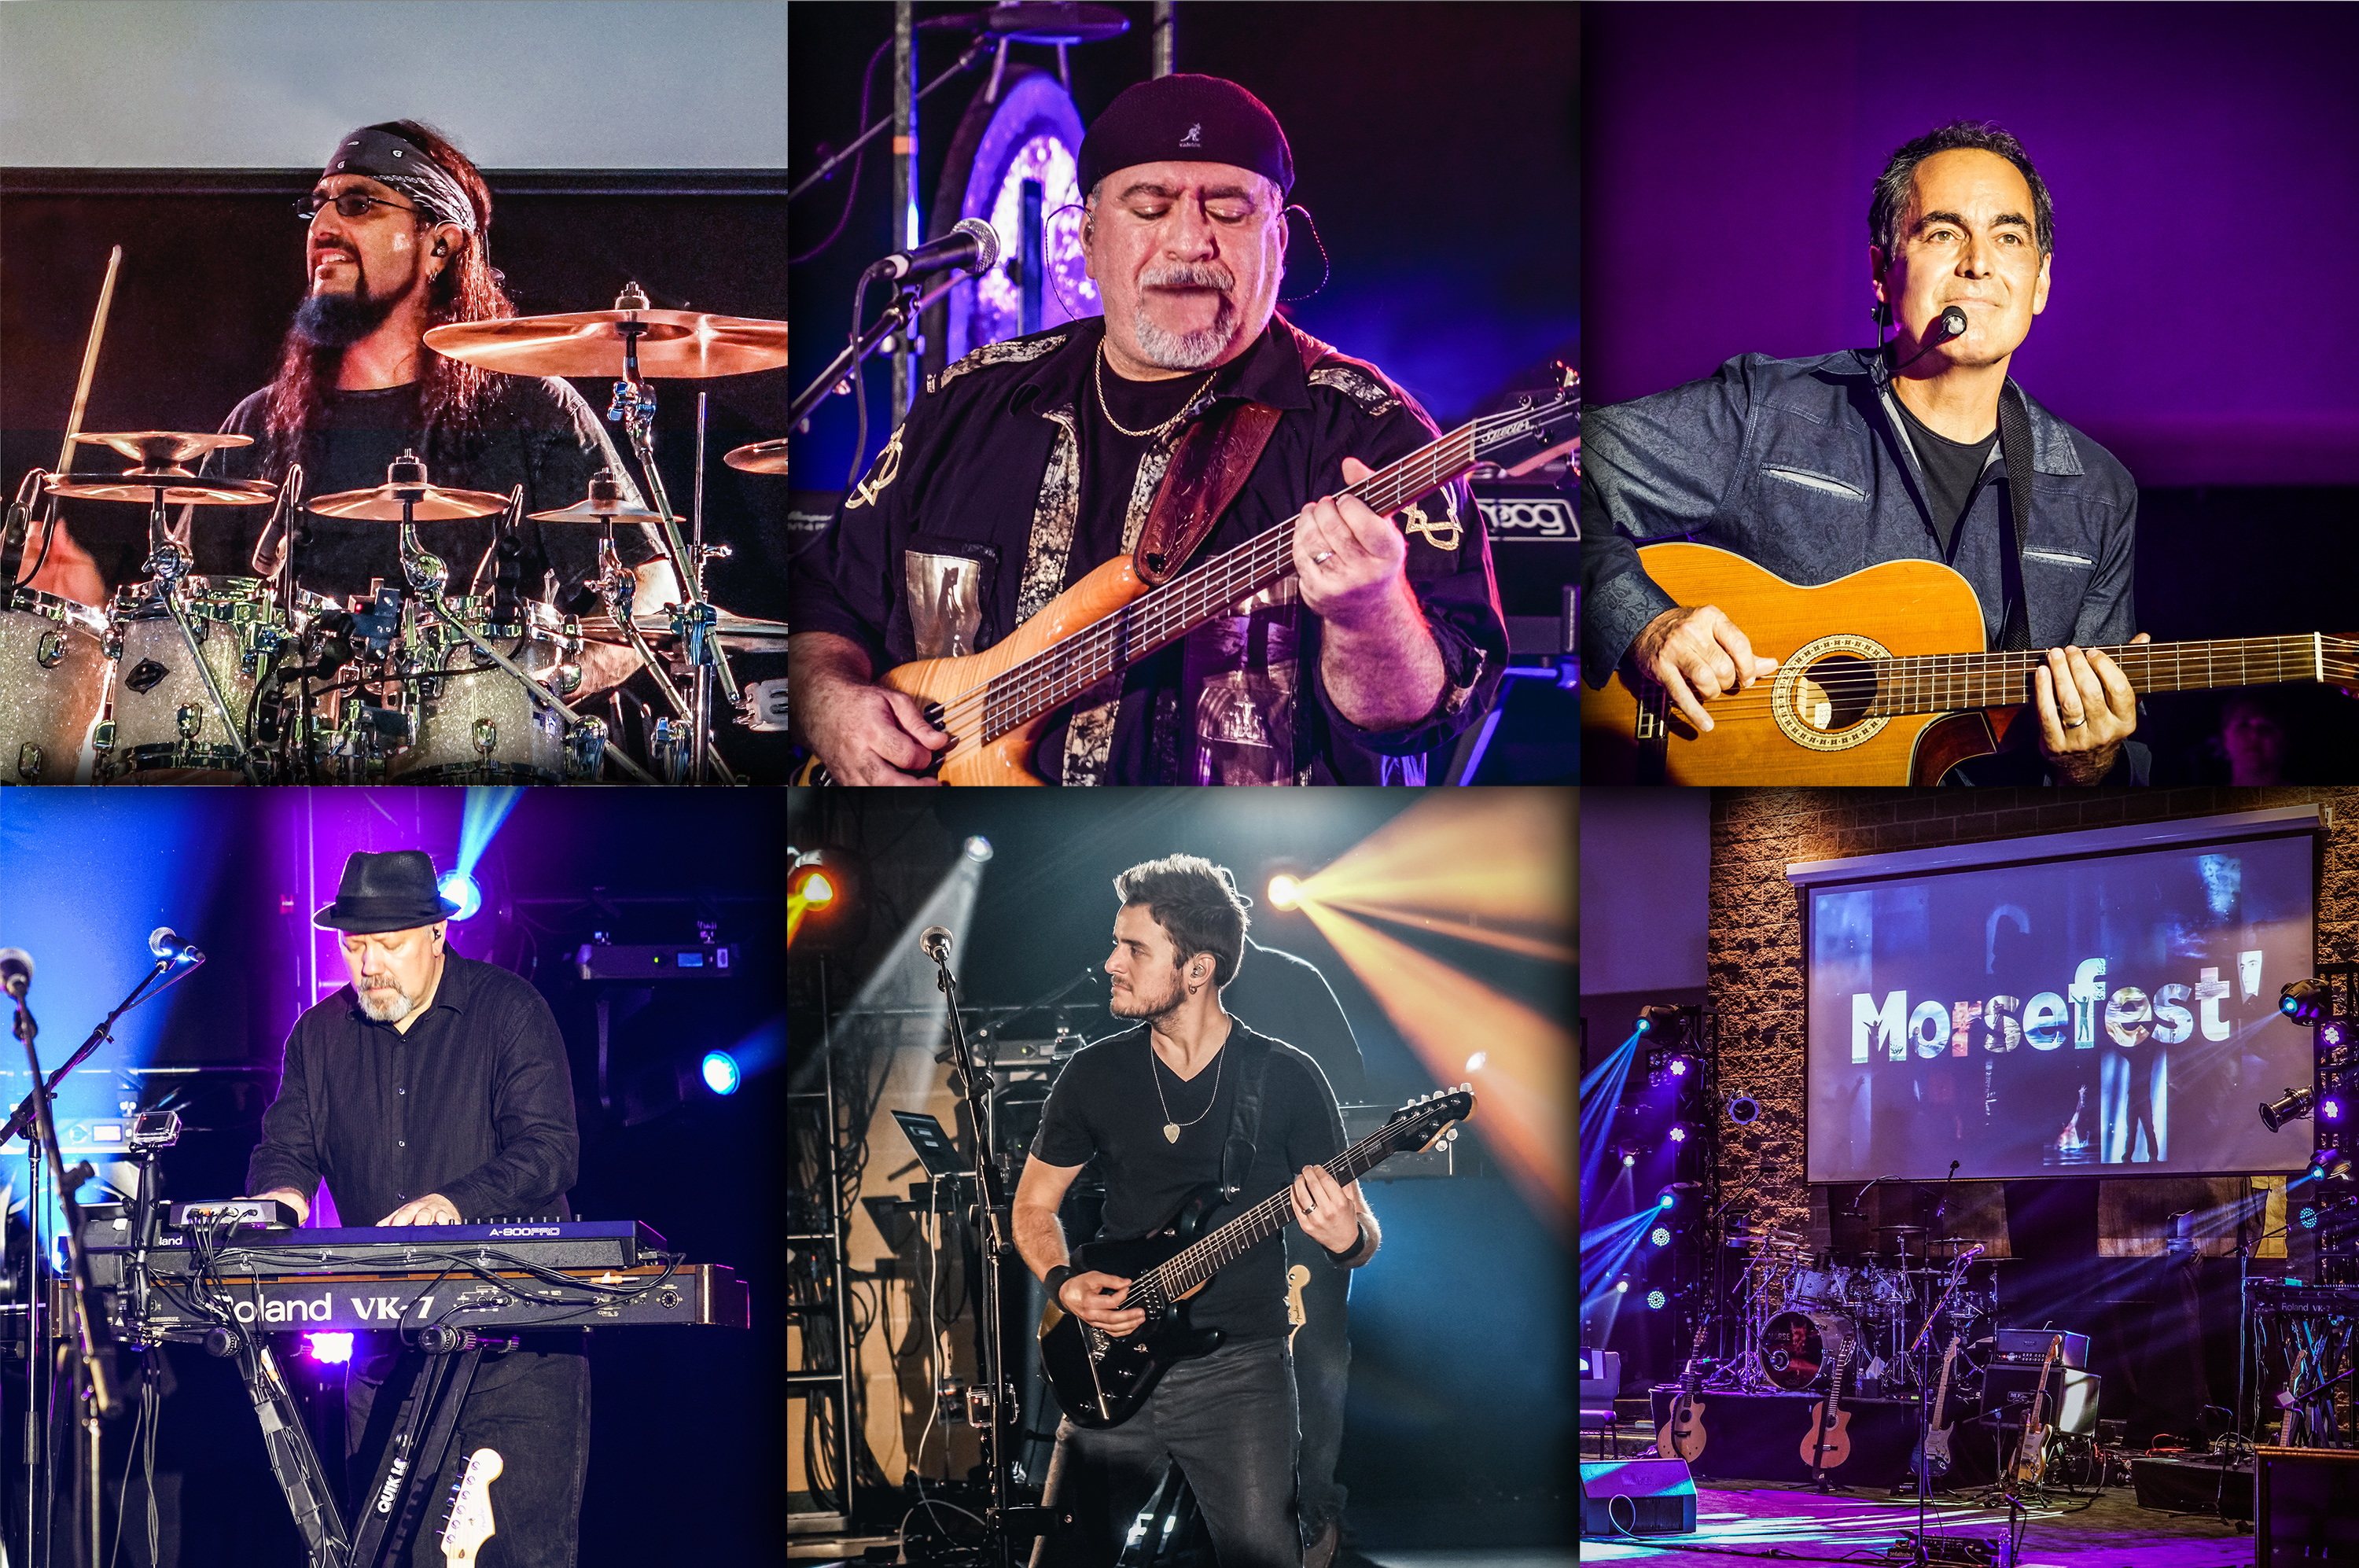 Neal Morse Band – The Grand Experiment (Live Video from Morsefest 2015)